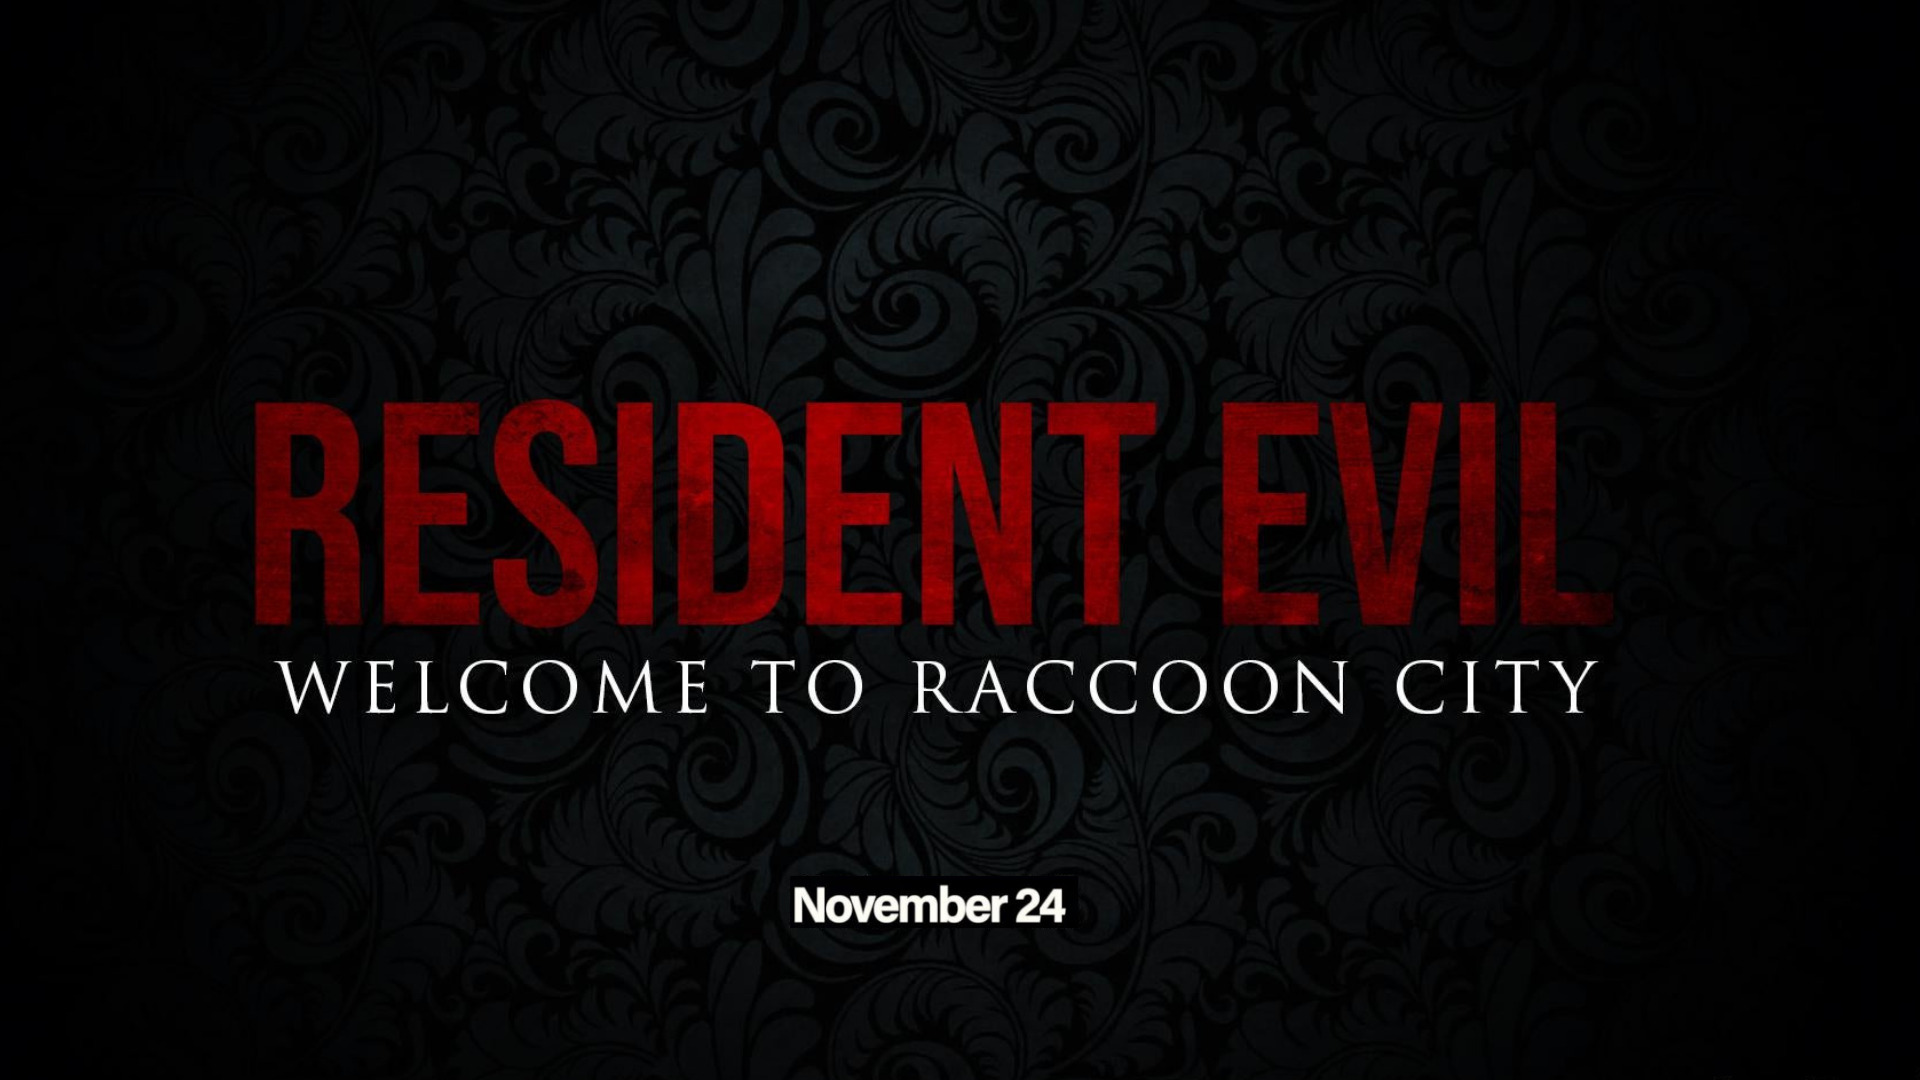 RE: Welcome to Raccoon City 24 november